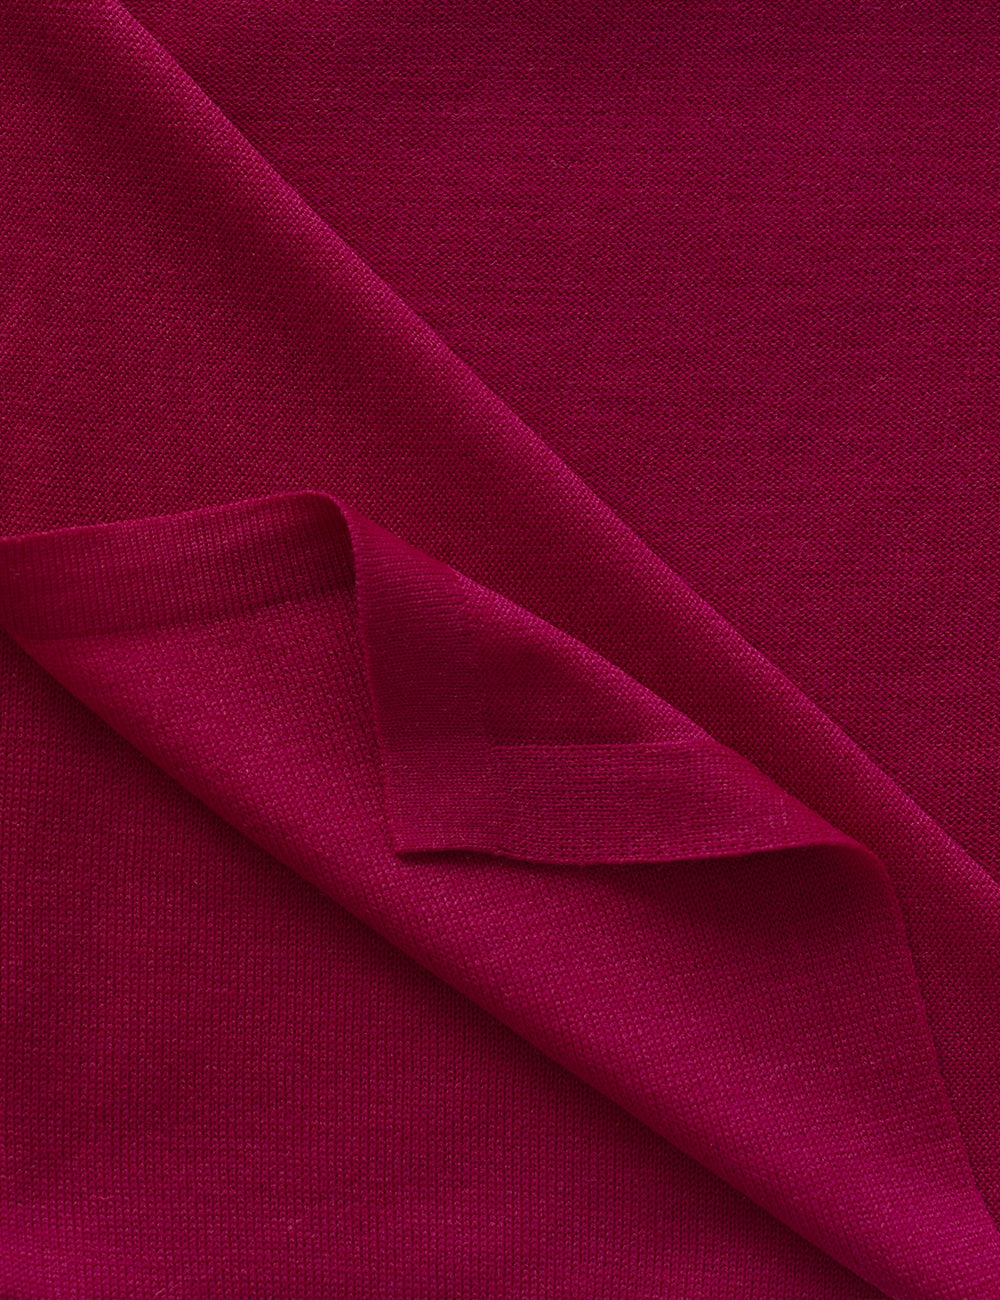 Australian Superfine Merino Wrap Soiree Size - Berry